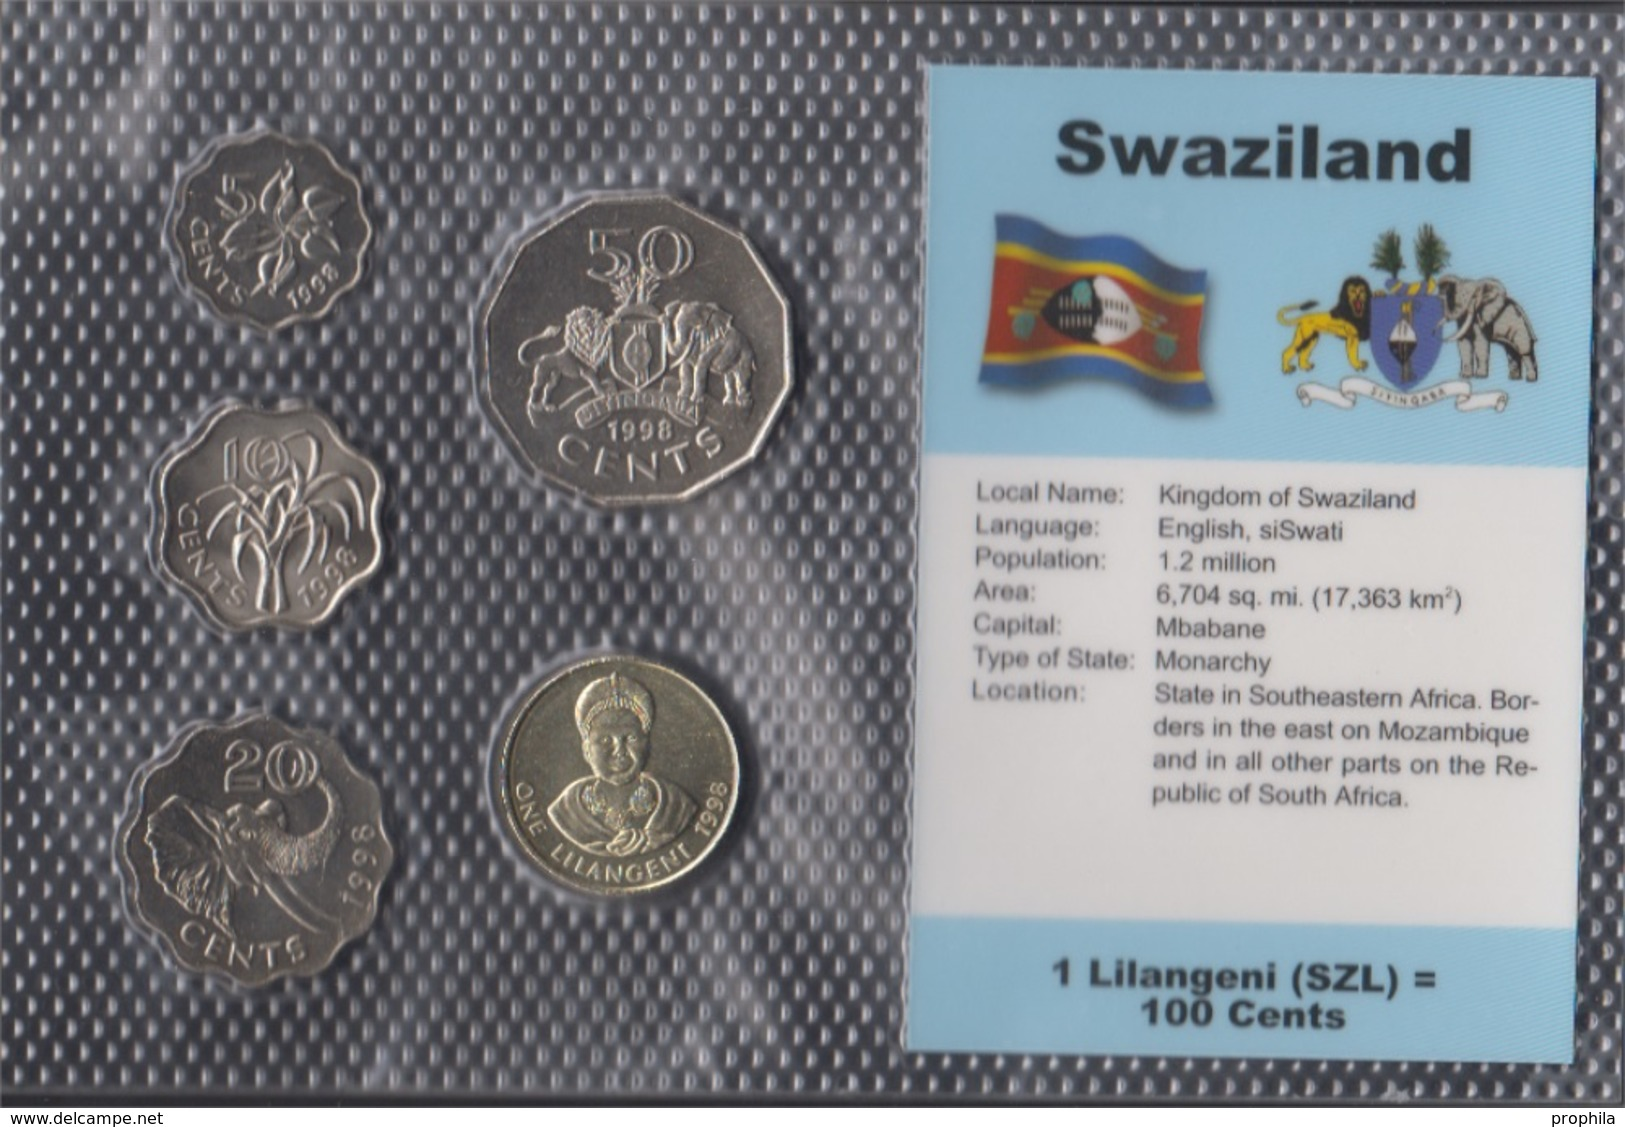 SWAZILAND AFRICA 20 CENTS KM42 1986 ELEPHANT KING UNC CURRENCY MONEY COIN